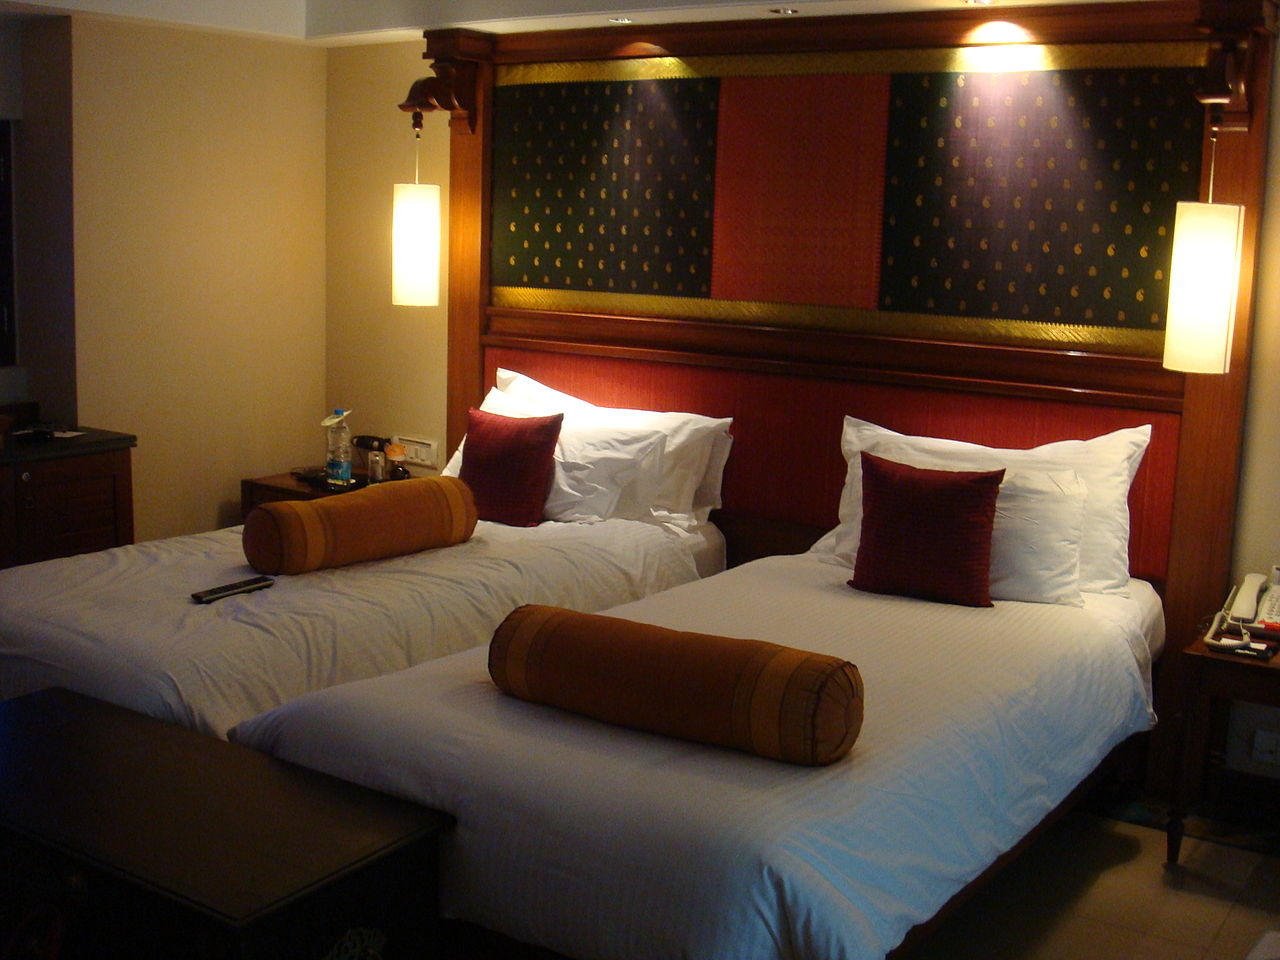 1280px-Hotel_room_beds_at_GRT_Temple_Bay_Resorts,_Mahabalipuram